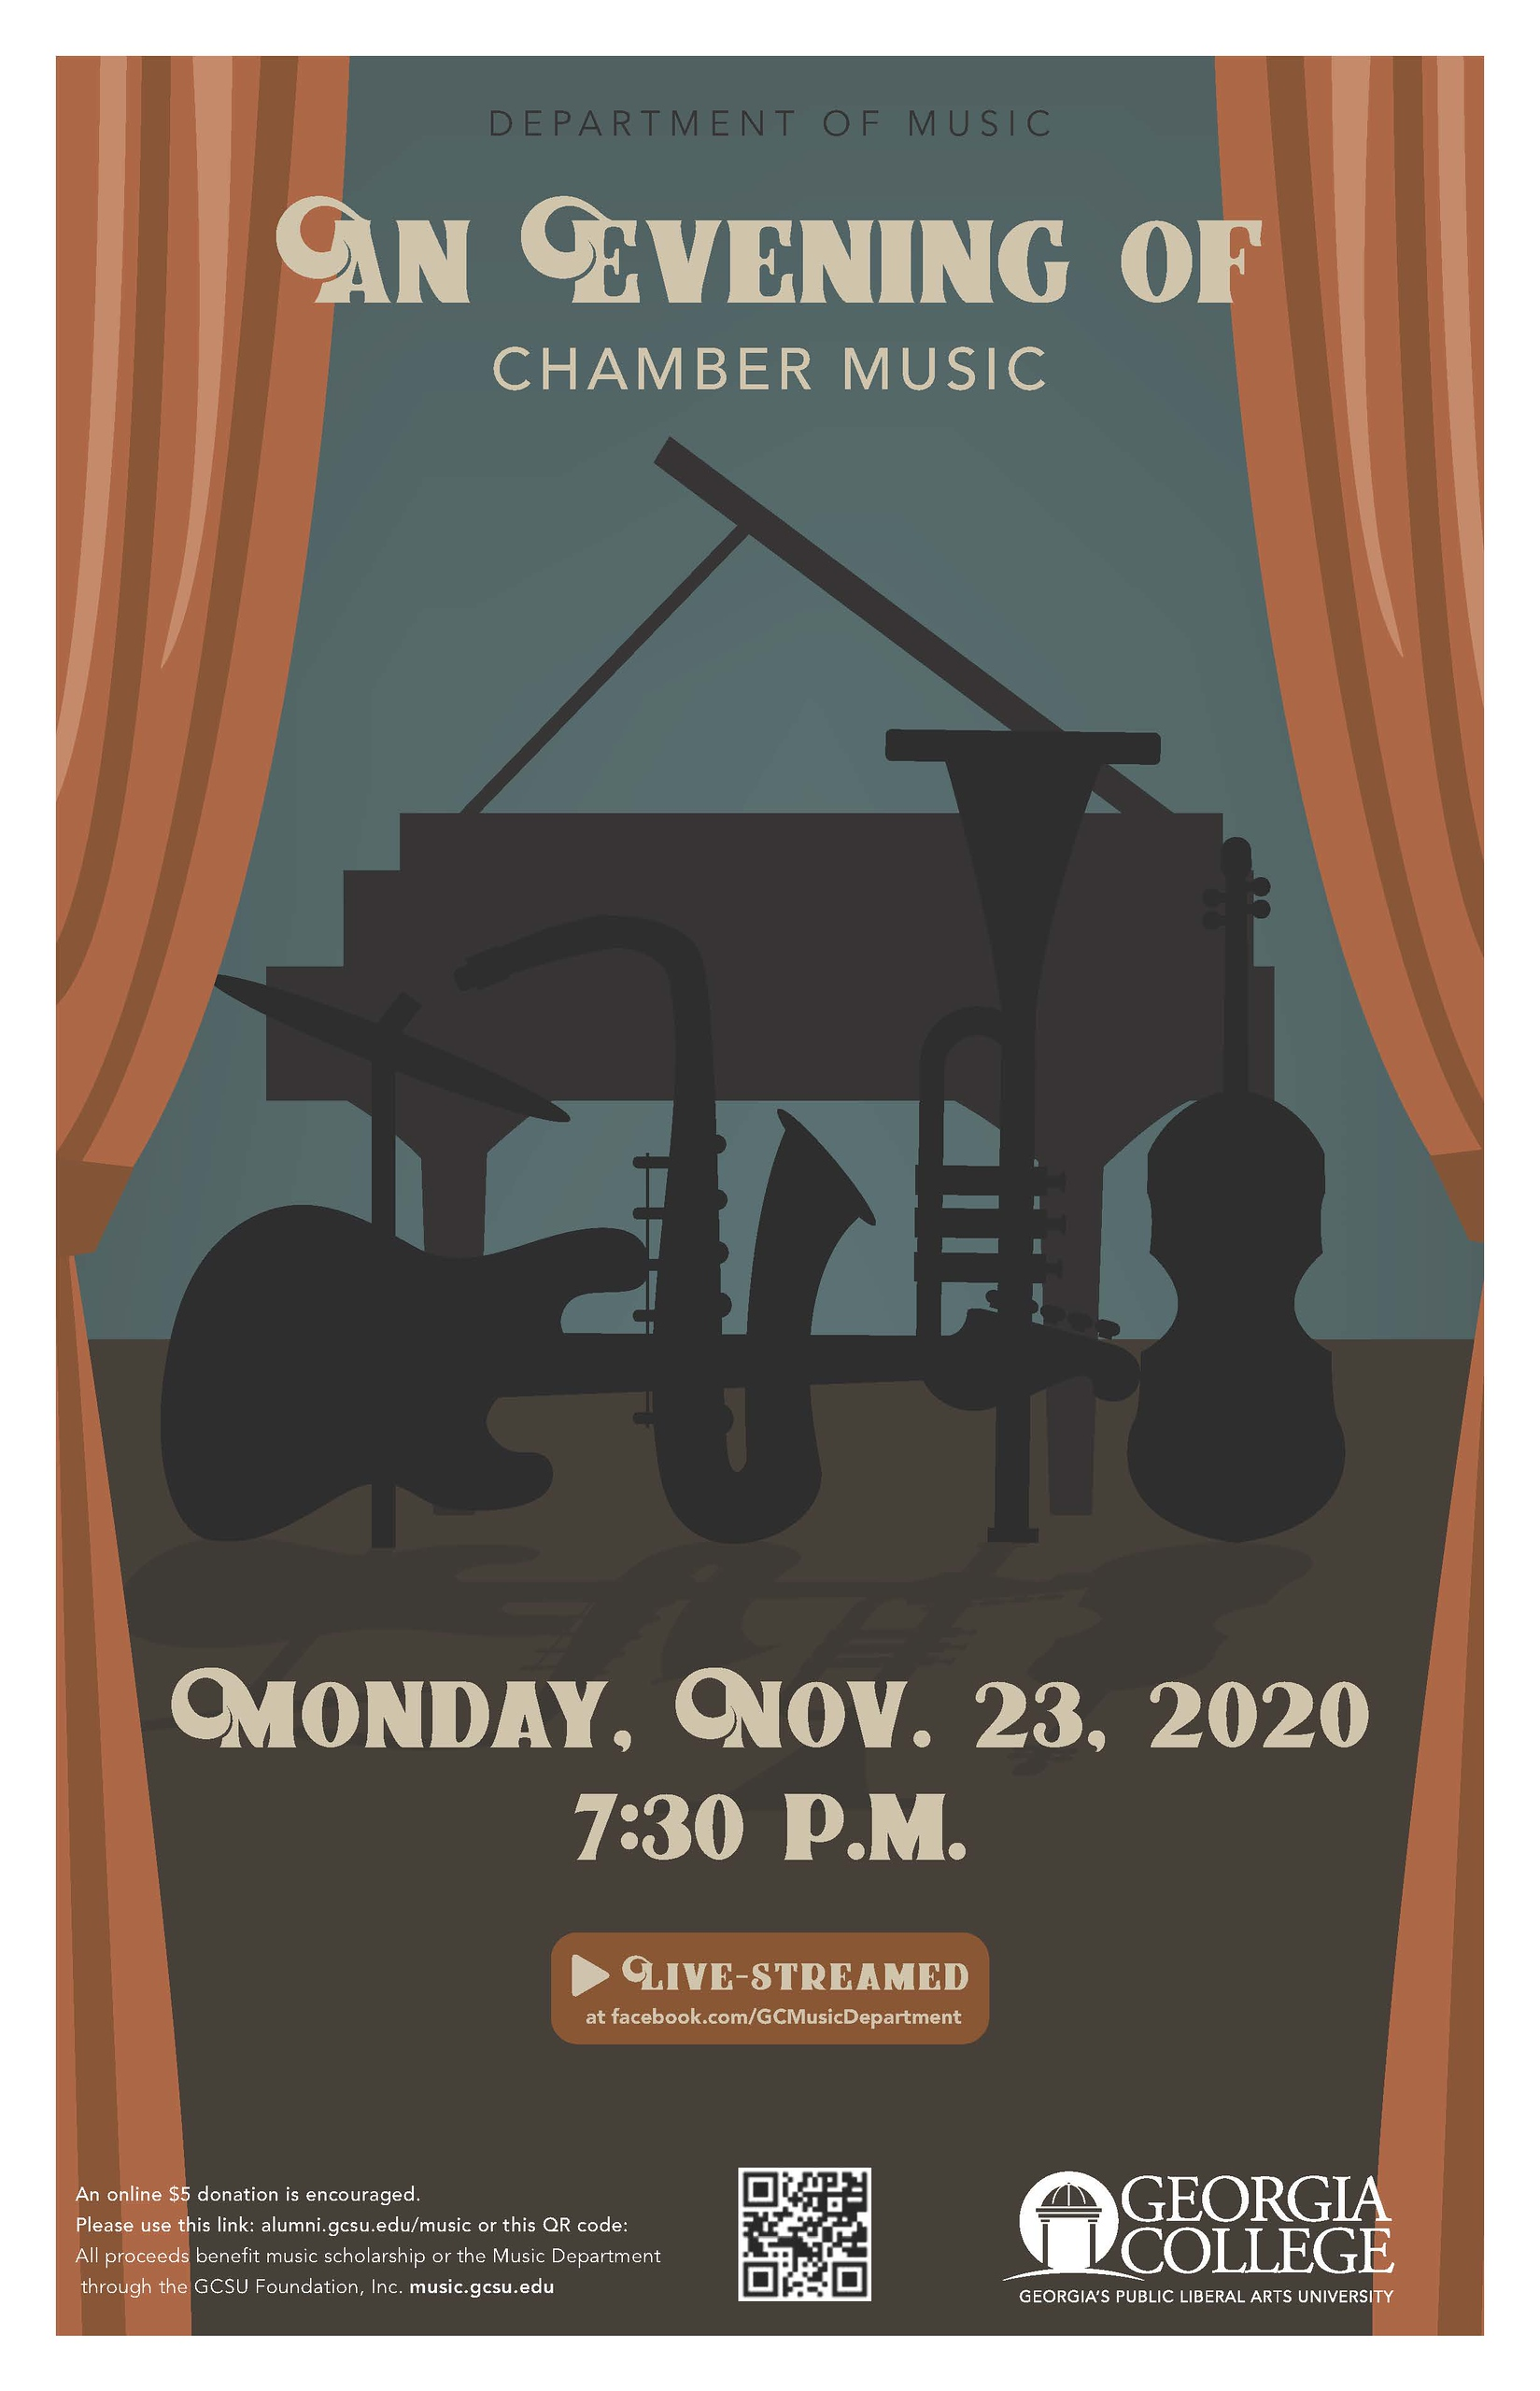 Please join us Monday, Nov. 23, 7:30 pm for this concert.